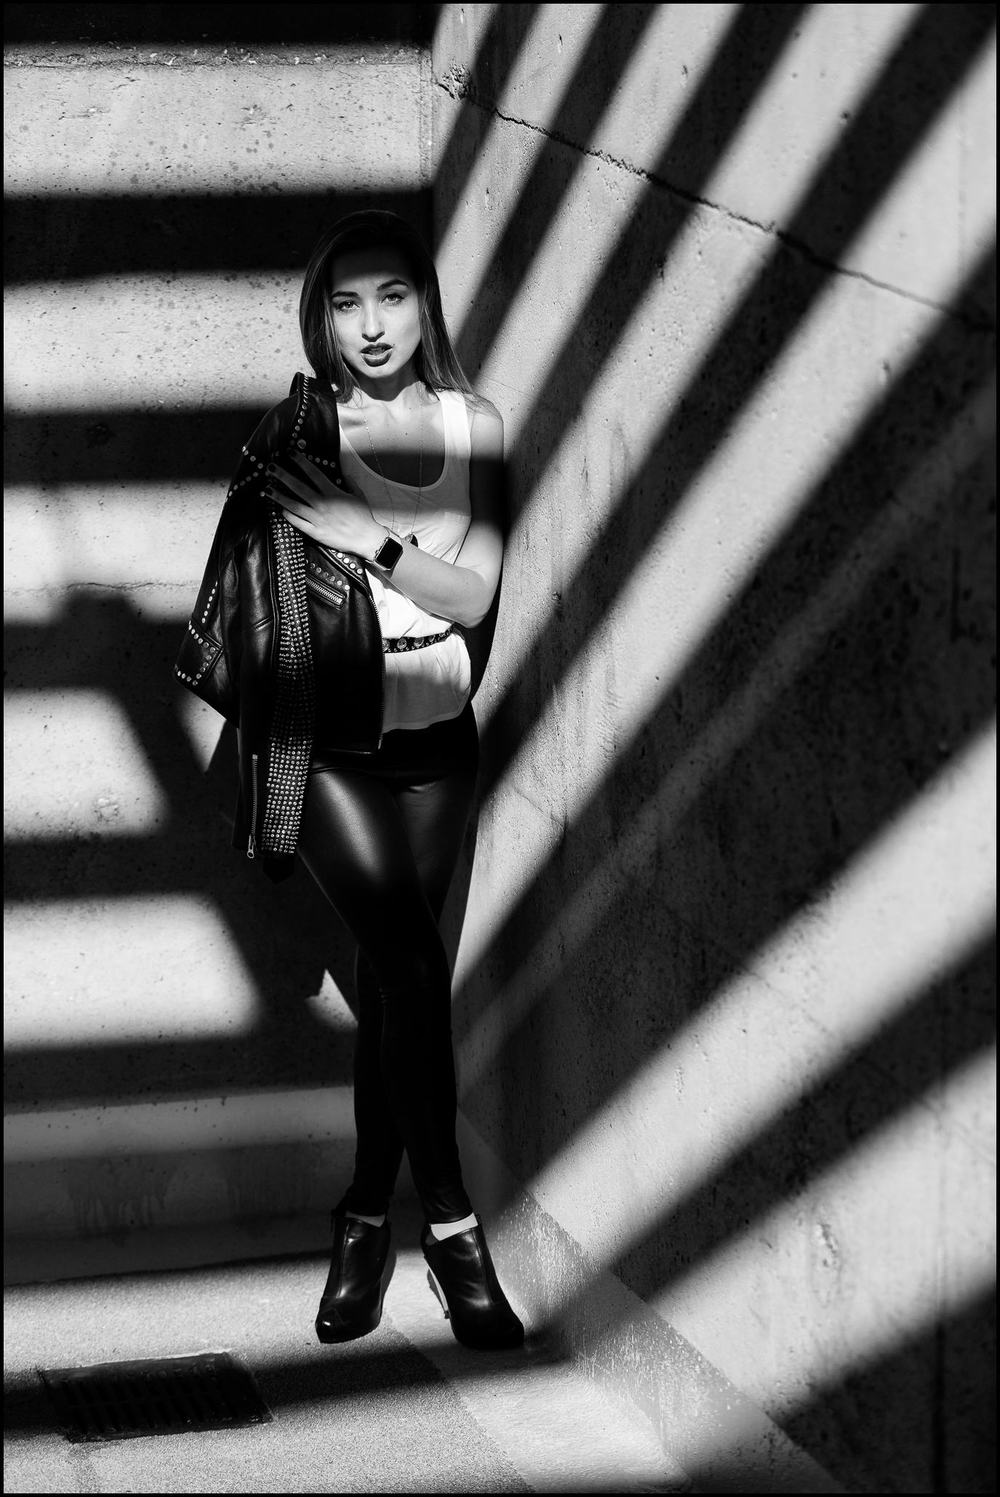 Nataliia in shadows